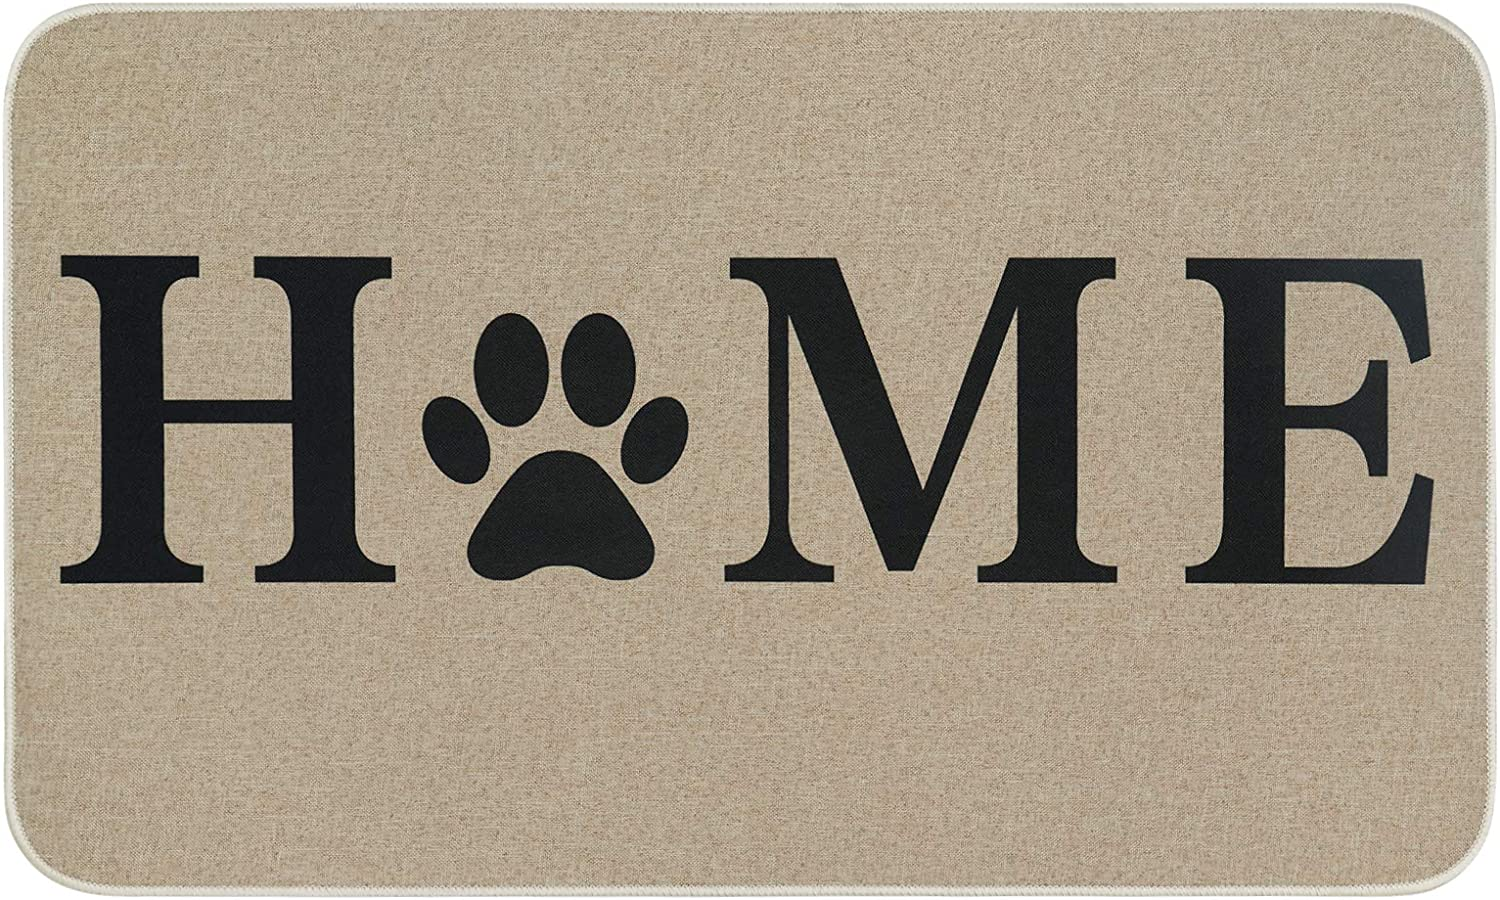 Home Doormat with Paw, Welcome Entrance Door Mats with Rubber Backing Non-Slip, Farmhouse Low-Profile Floor Mat for Indoor Outdoor Front Porch Decorative, 18 x 30 Inch